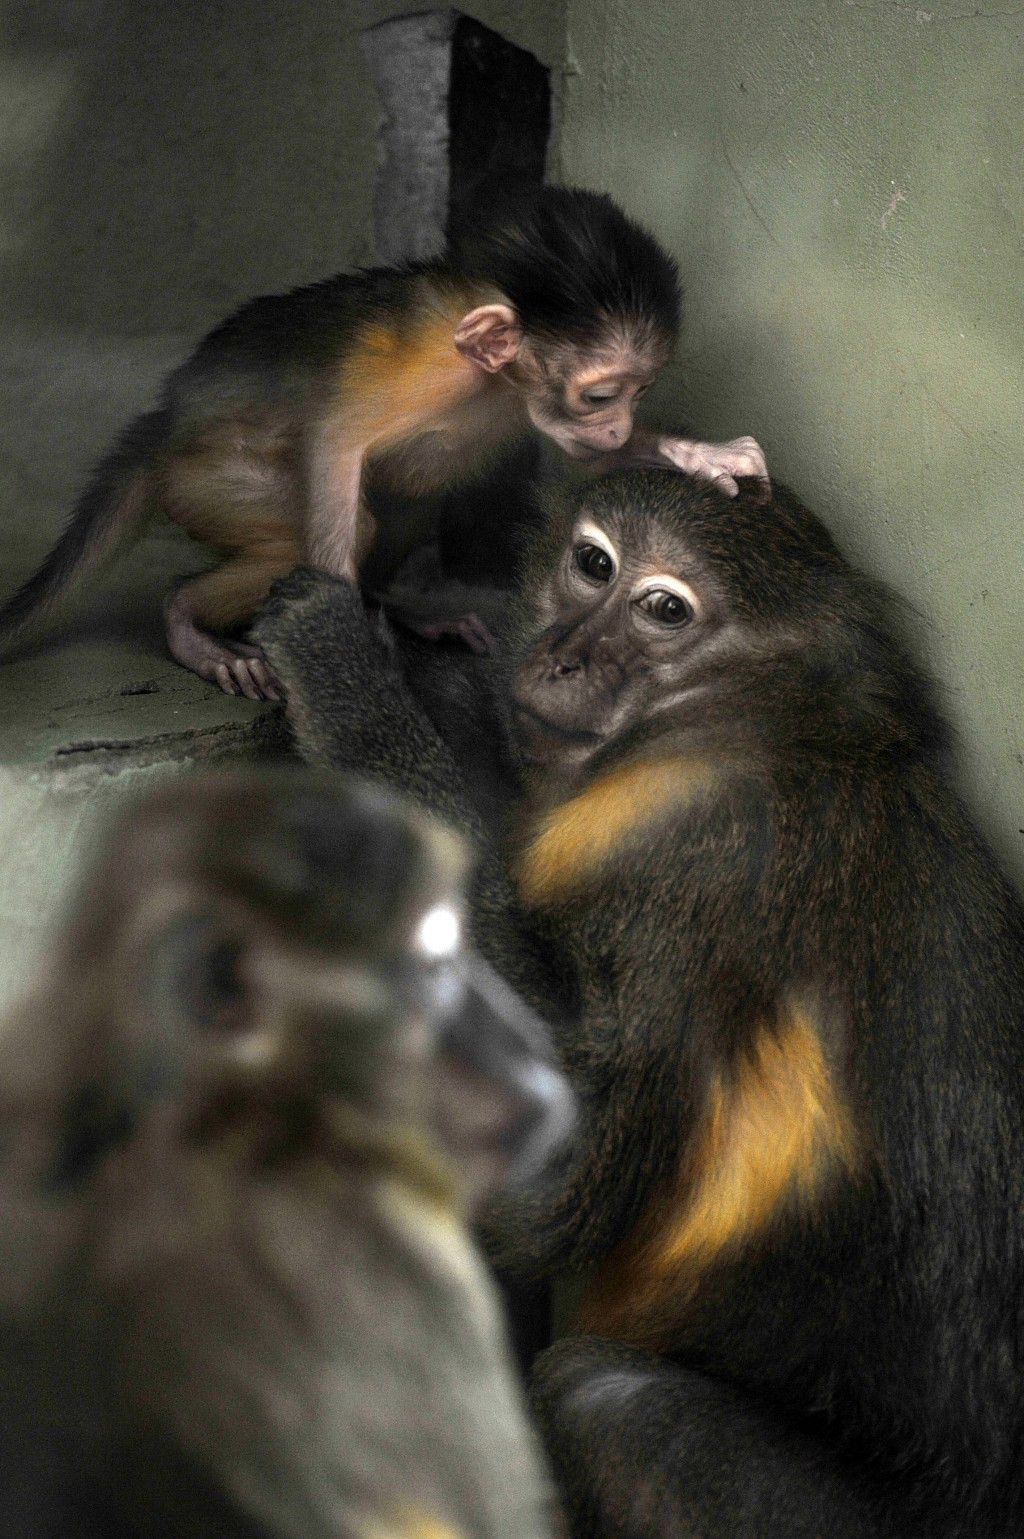 Friday, November 9, 2018 photo, a golden-bellied mangabey with her newborn cub at their enclosure in the Budapest Zoo, Hungary.. The baby monkey was b...